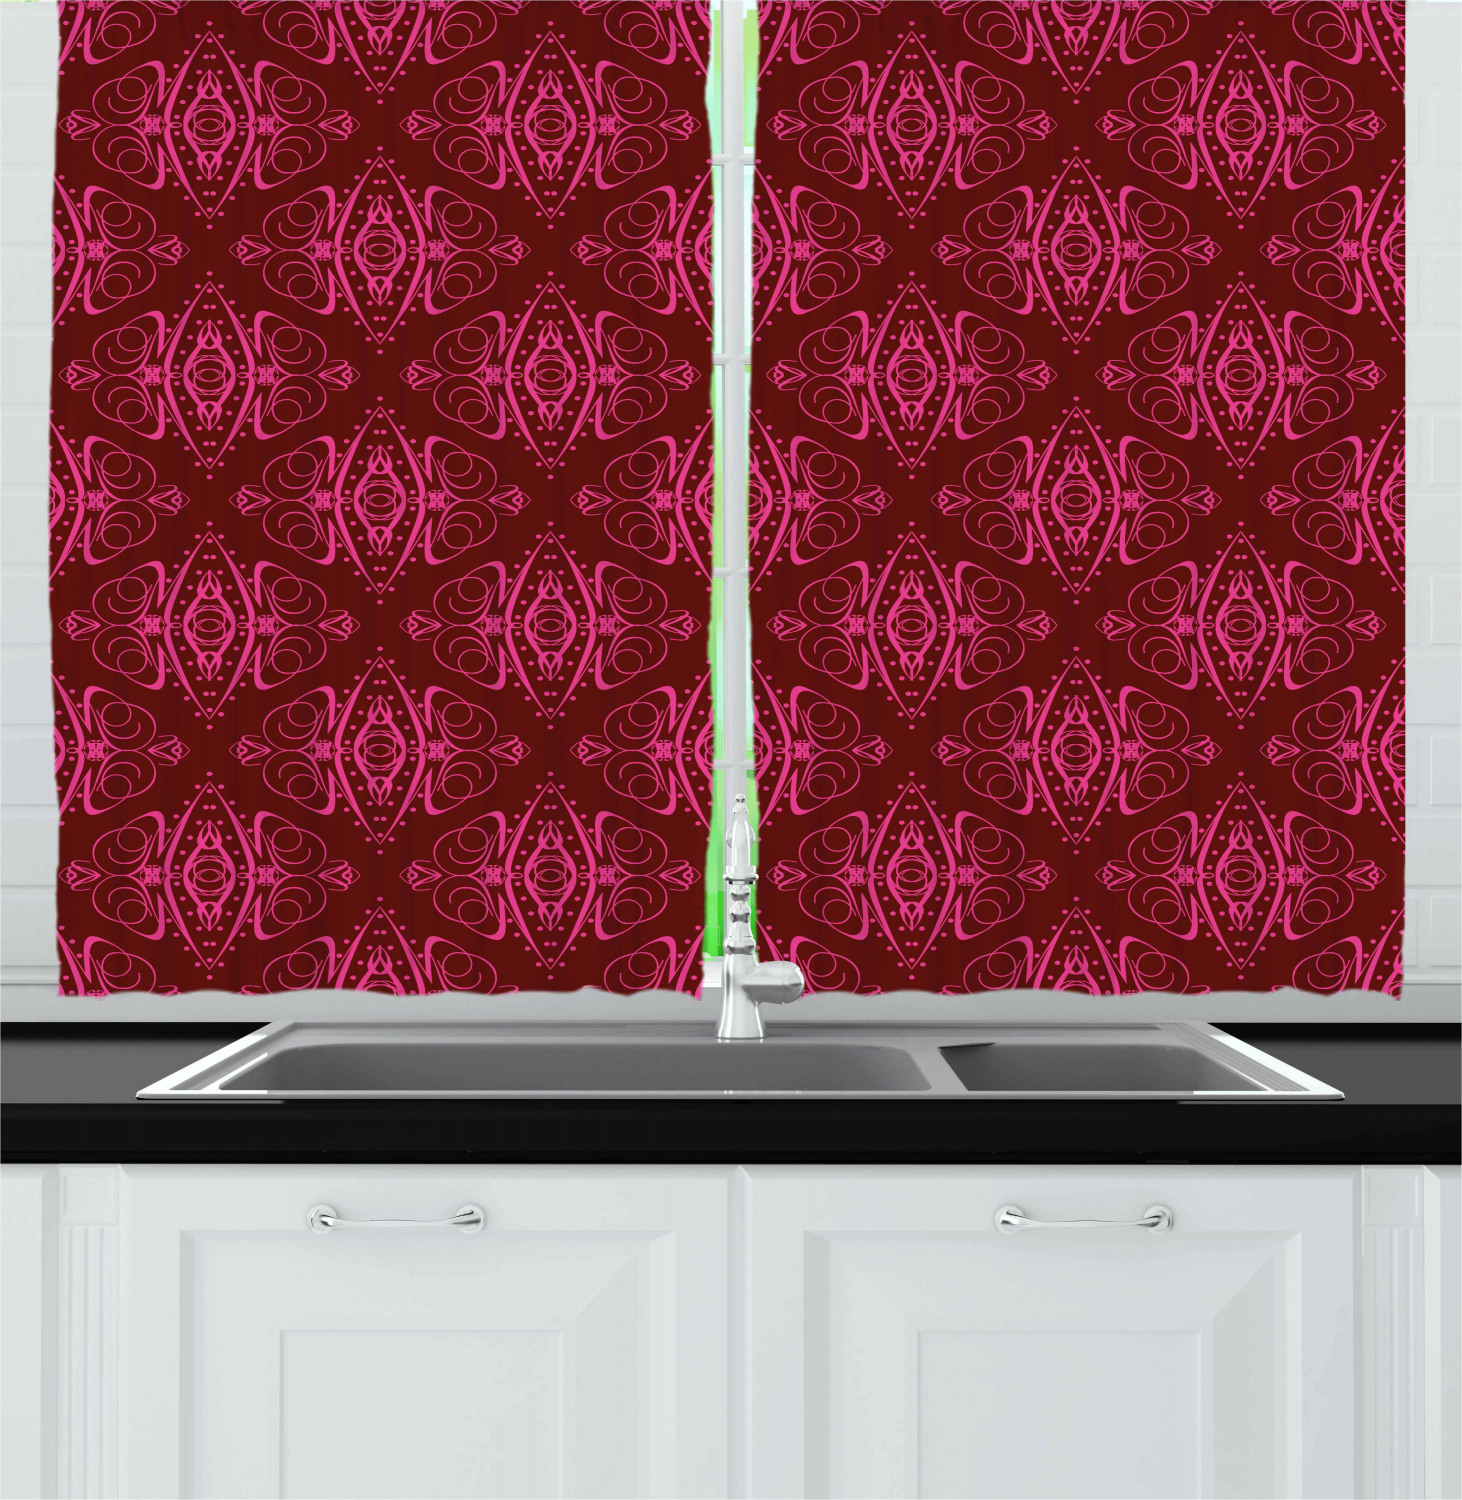 "Hot Pink Kitchen Curtains 2 Panel Set Window Drapes 55"" X"